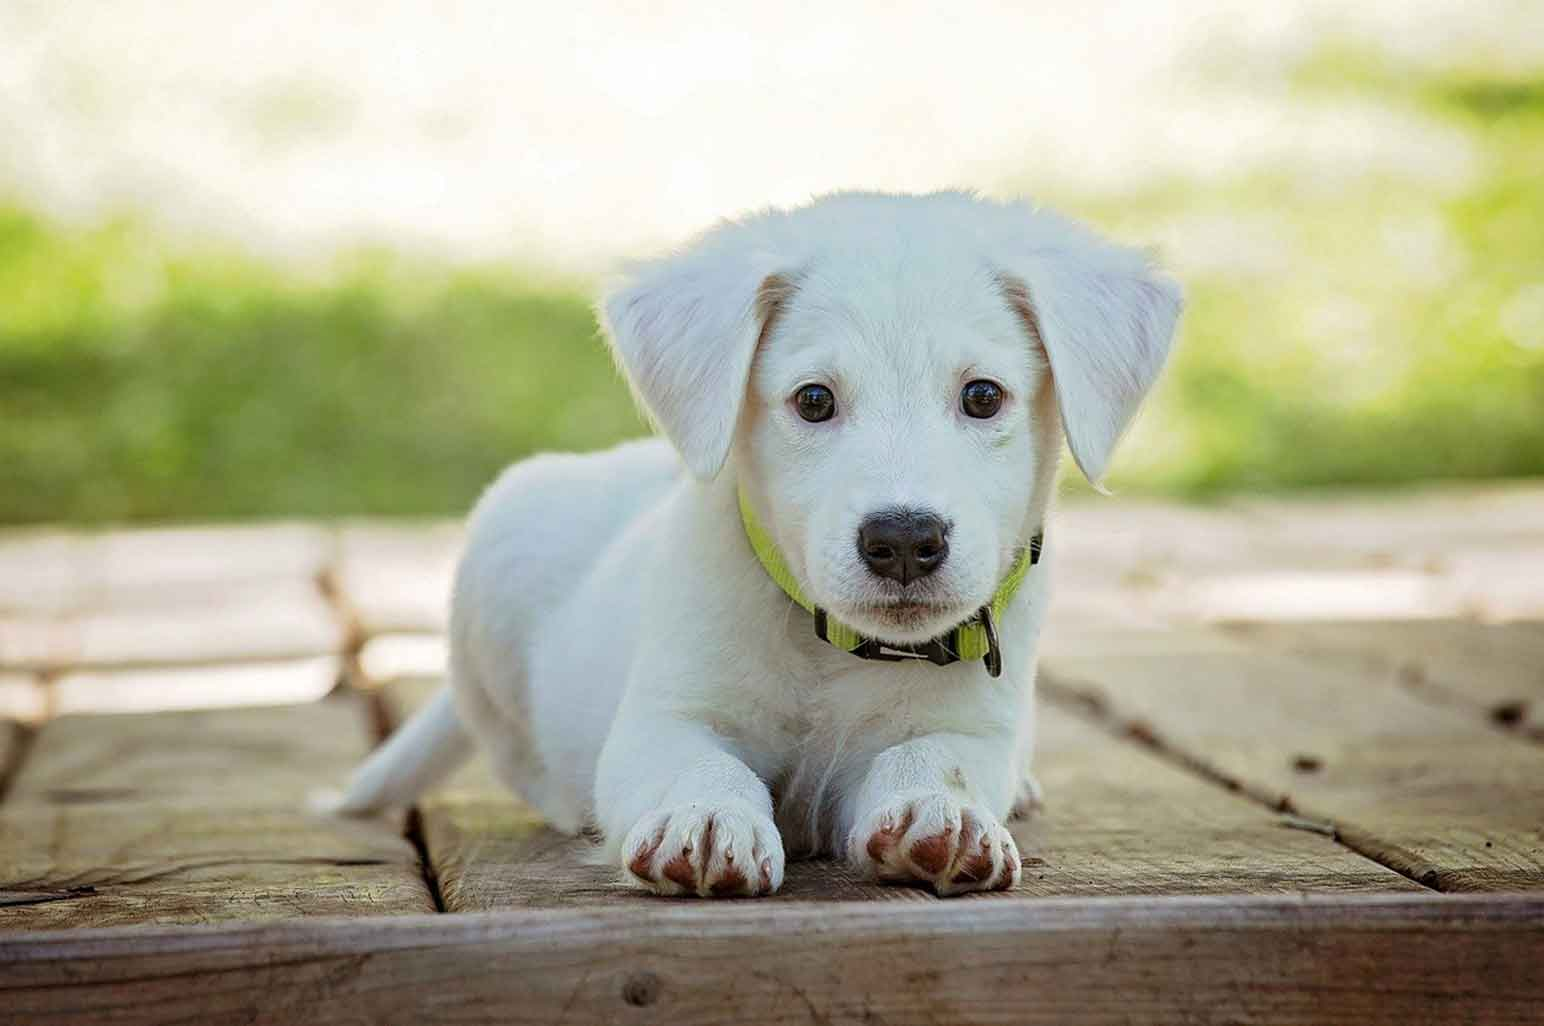 How to Know if Your Puppy is Healthy